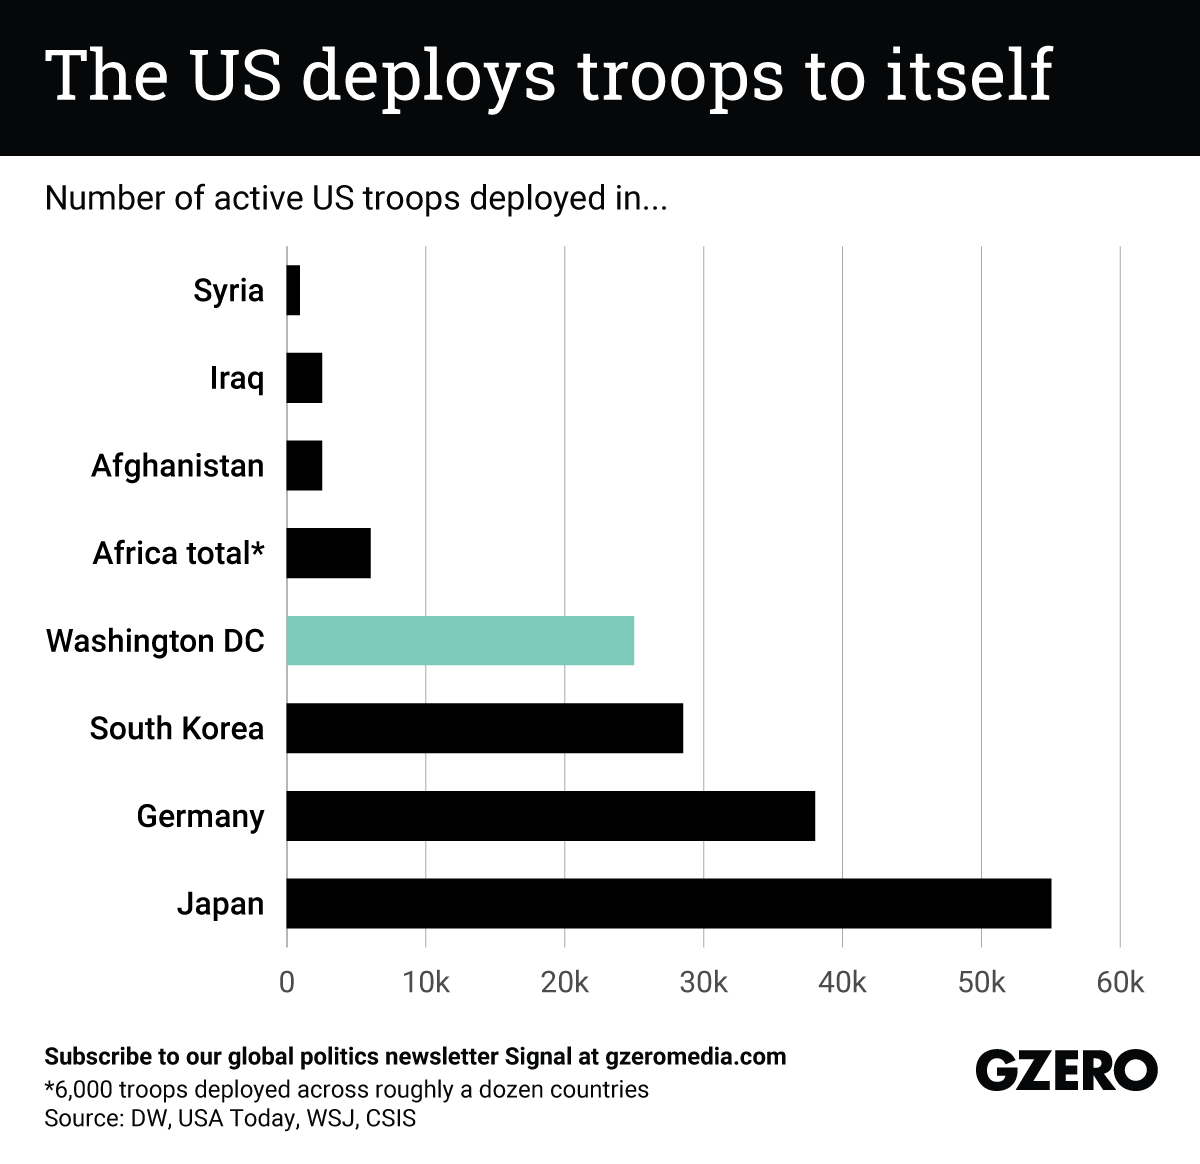 The Graphic Truth: The US deploys troops to itself